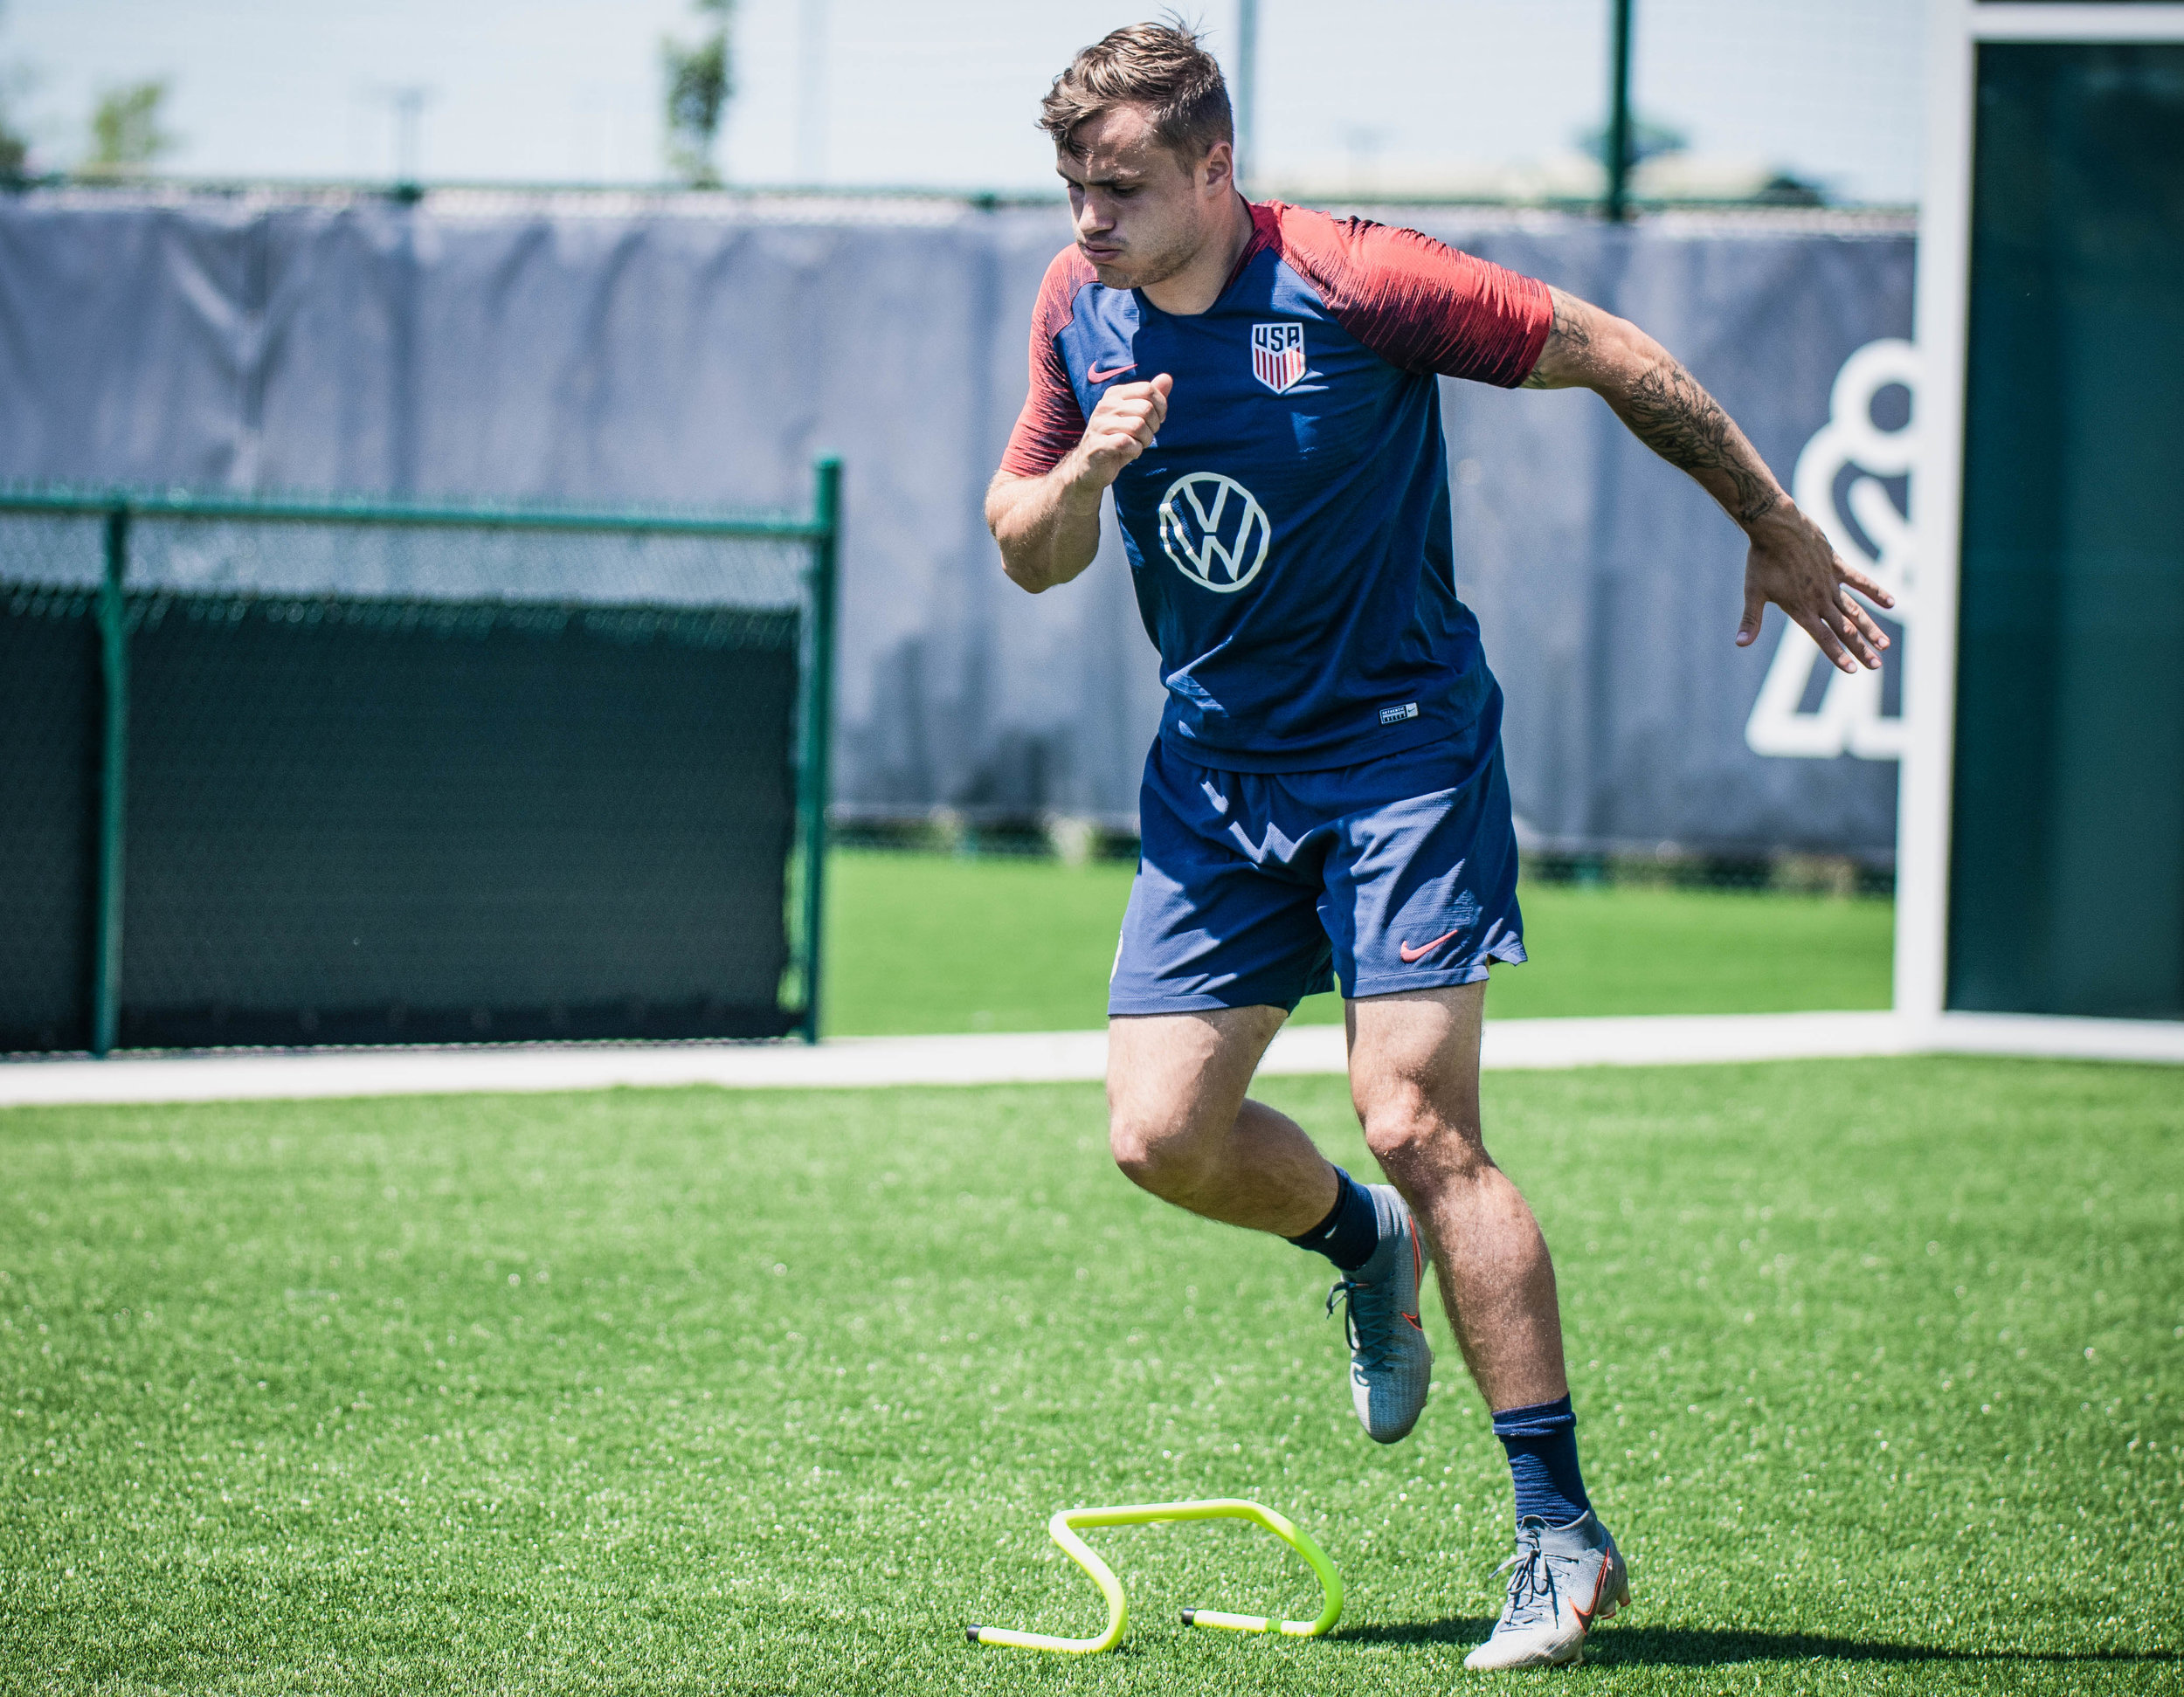 Jordan Morris jumps during the U.S. Men's National Team, Gold Cup training session on Tuesday, June 25, 2019 at Pinnacle National Development Center in Kansas City, Kansas. The U.S. Men's National Team will face off with Panama in the team's final group stage match of the Gold Cup. | Photo by: Noah Riffe